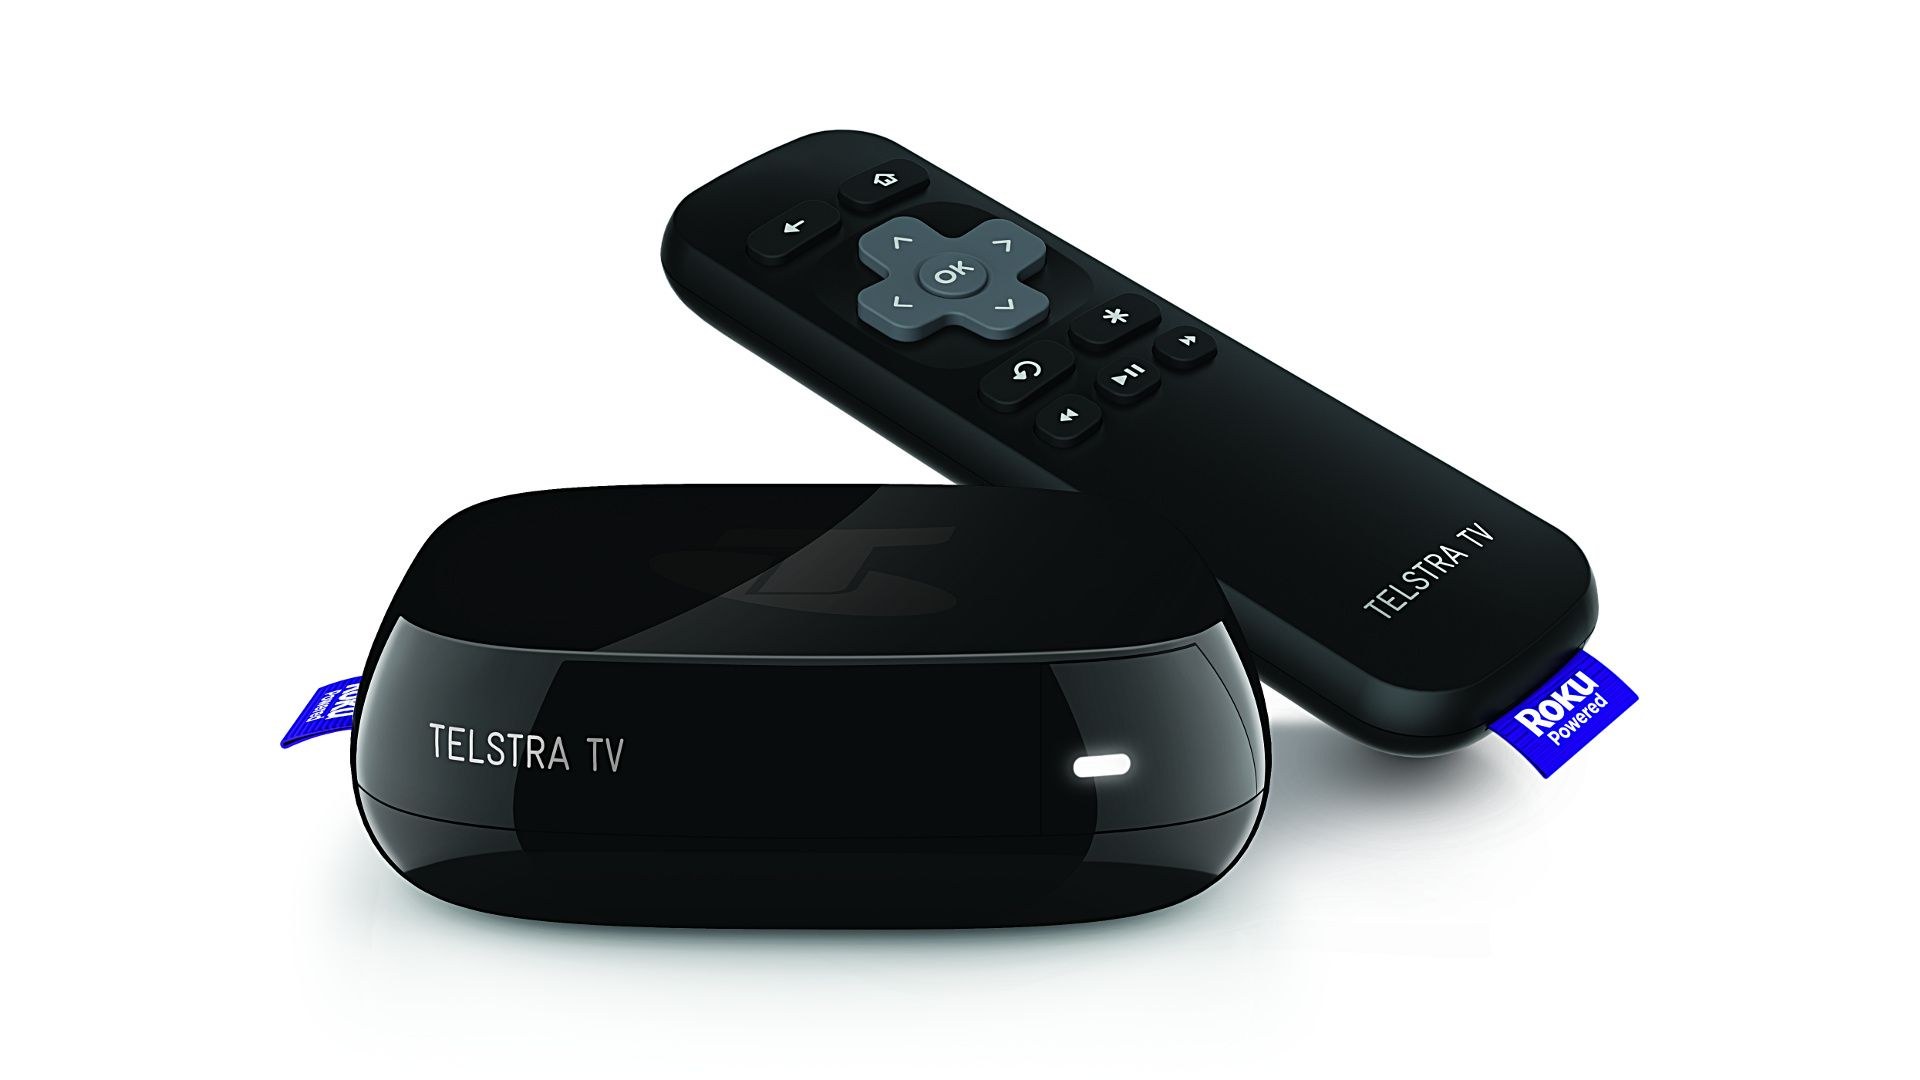 Telstra S Tv Streaming Box Is Out Next Week For 109 Gizmodo